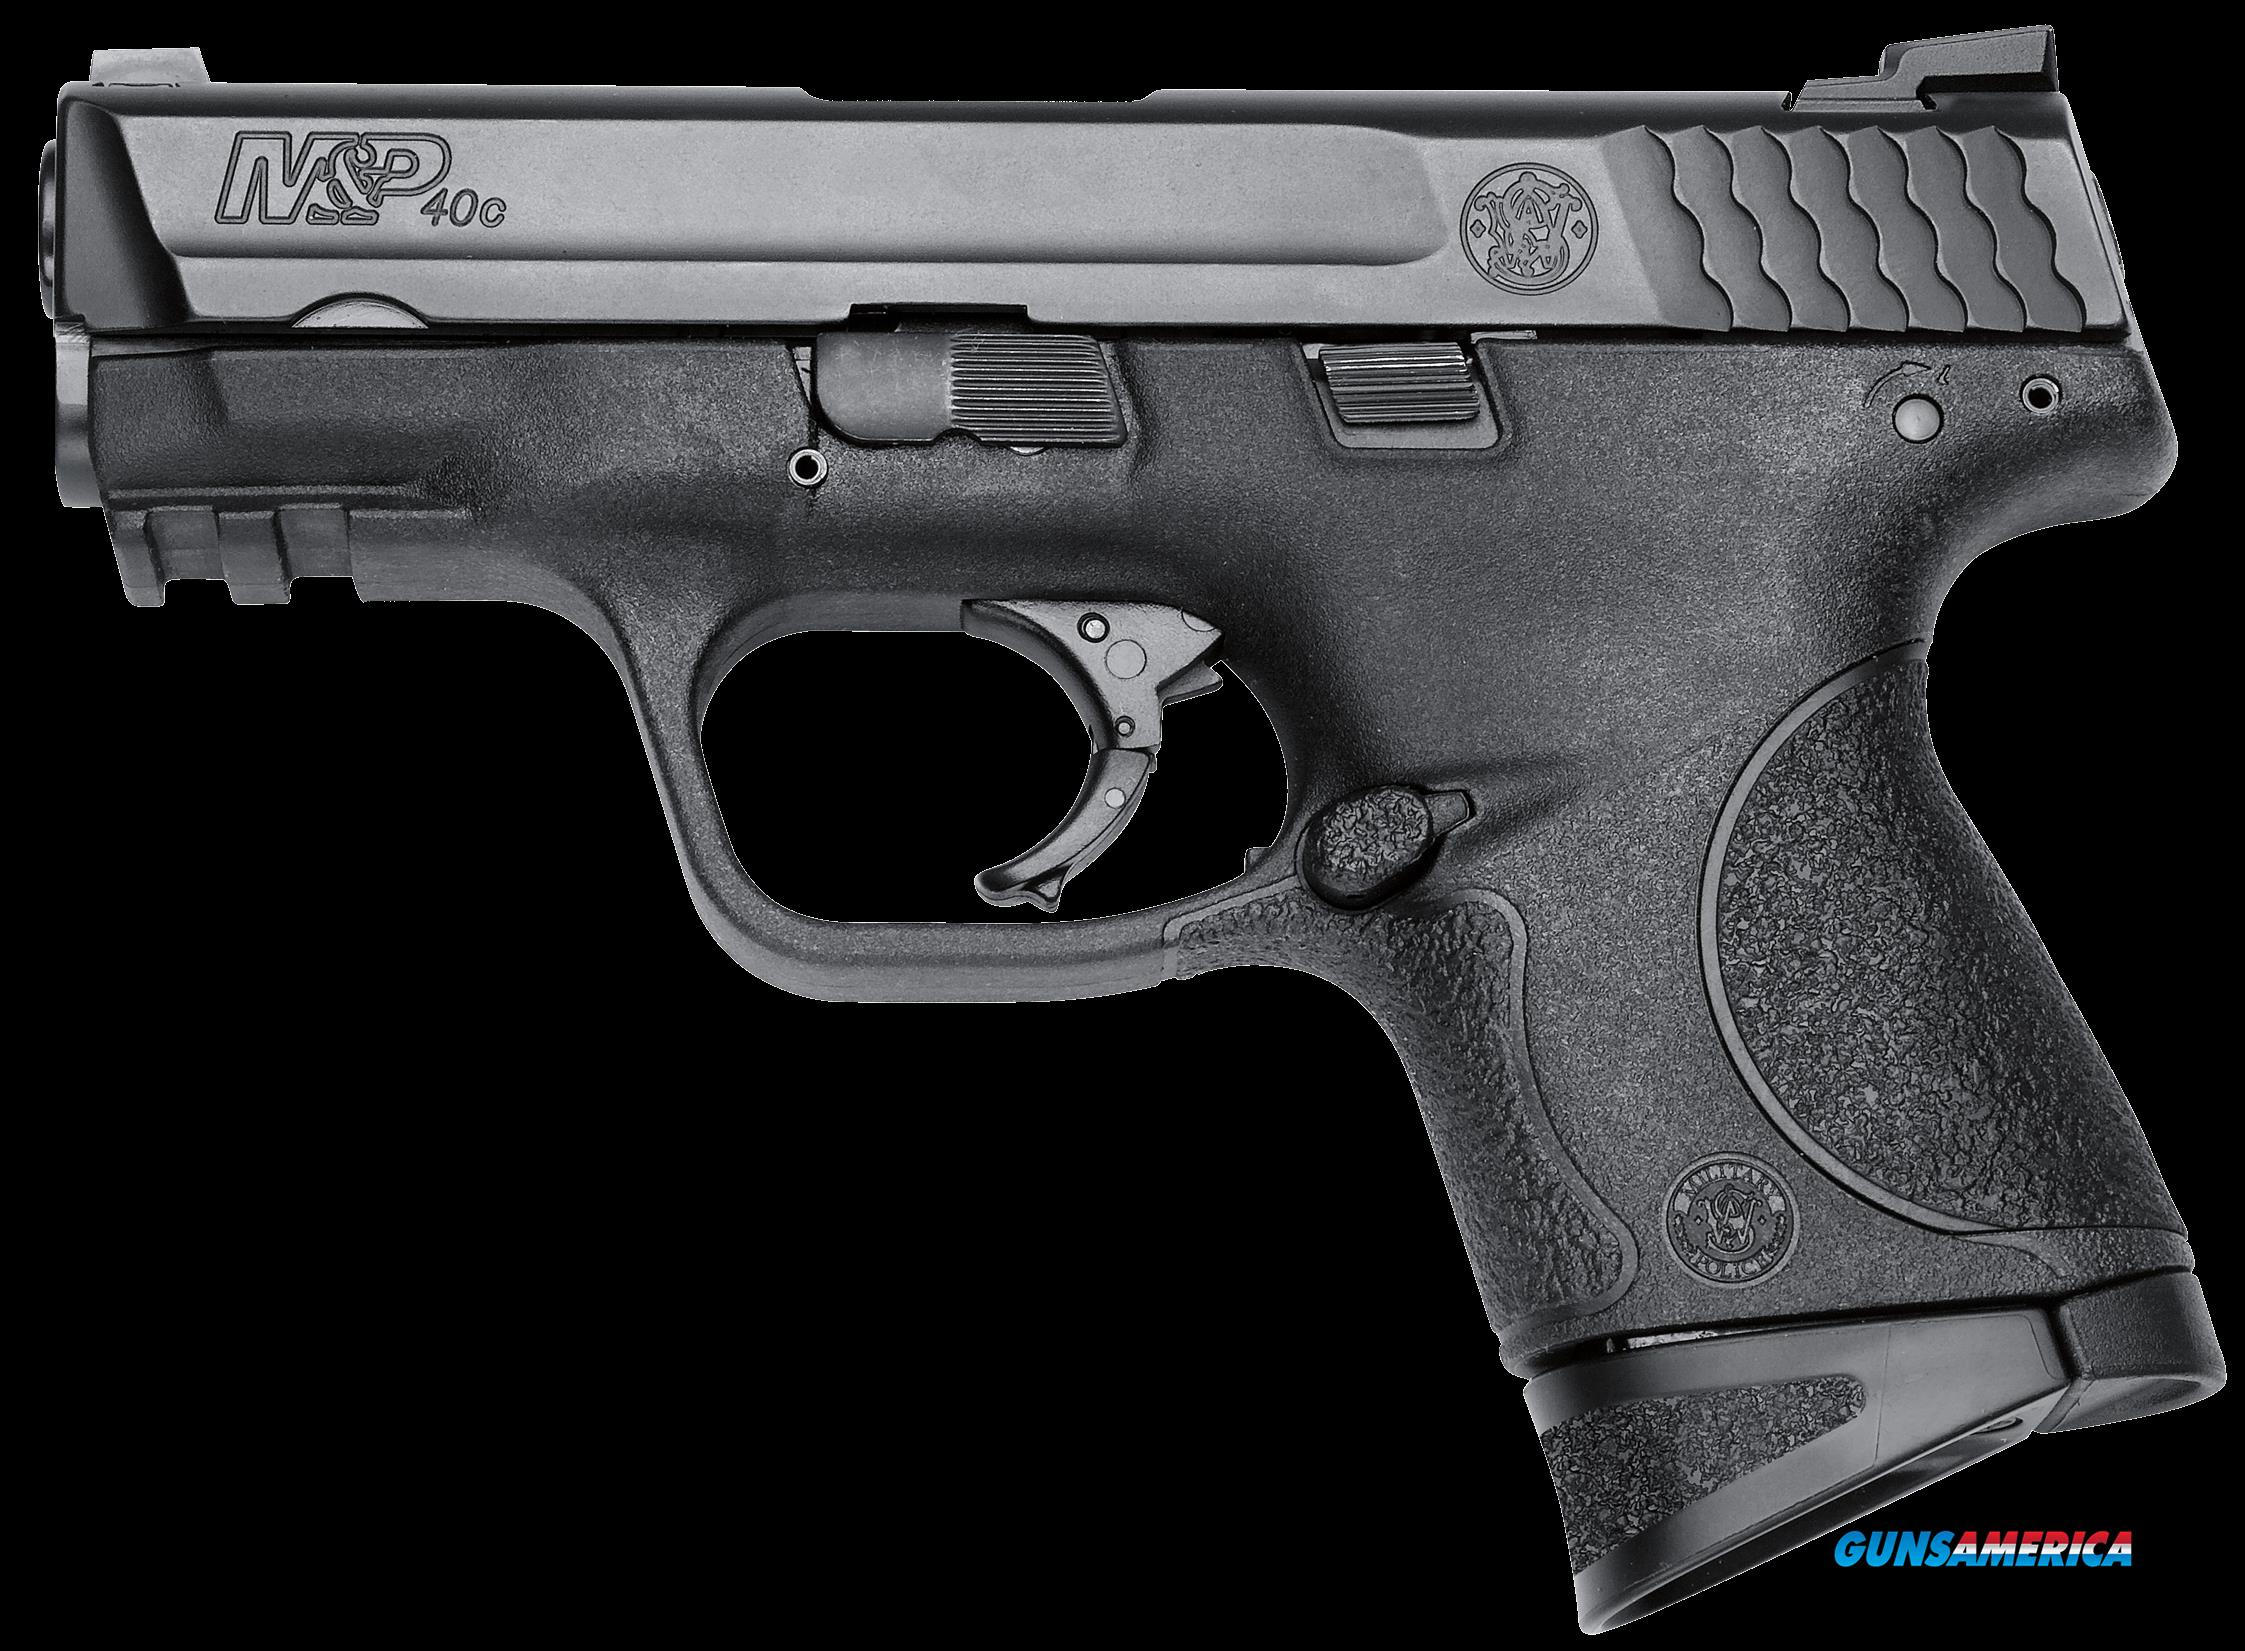 Smith & Wesson 10177 M&P 40 Compact with Crimson Trace Green Laserguard Double 40 Smith & Wesson  Guns > Pistols > S Misc Pistols